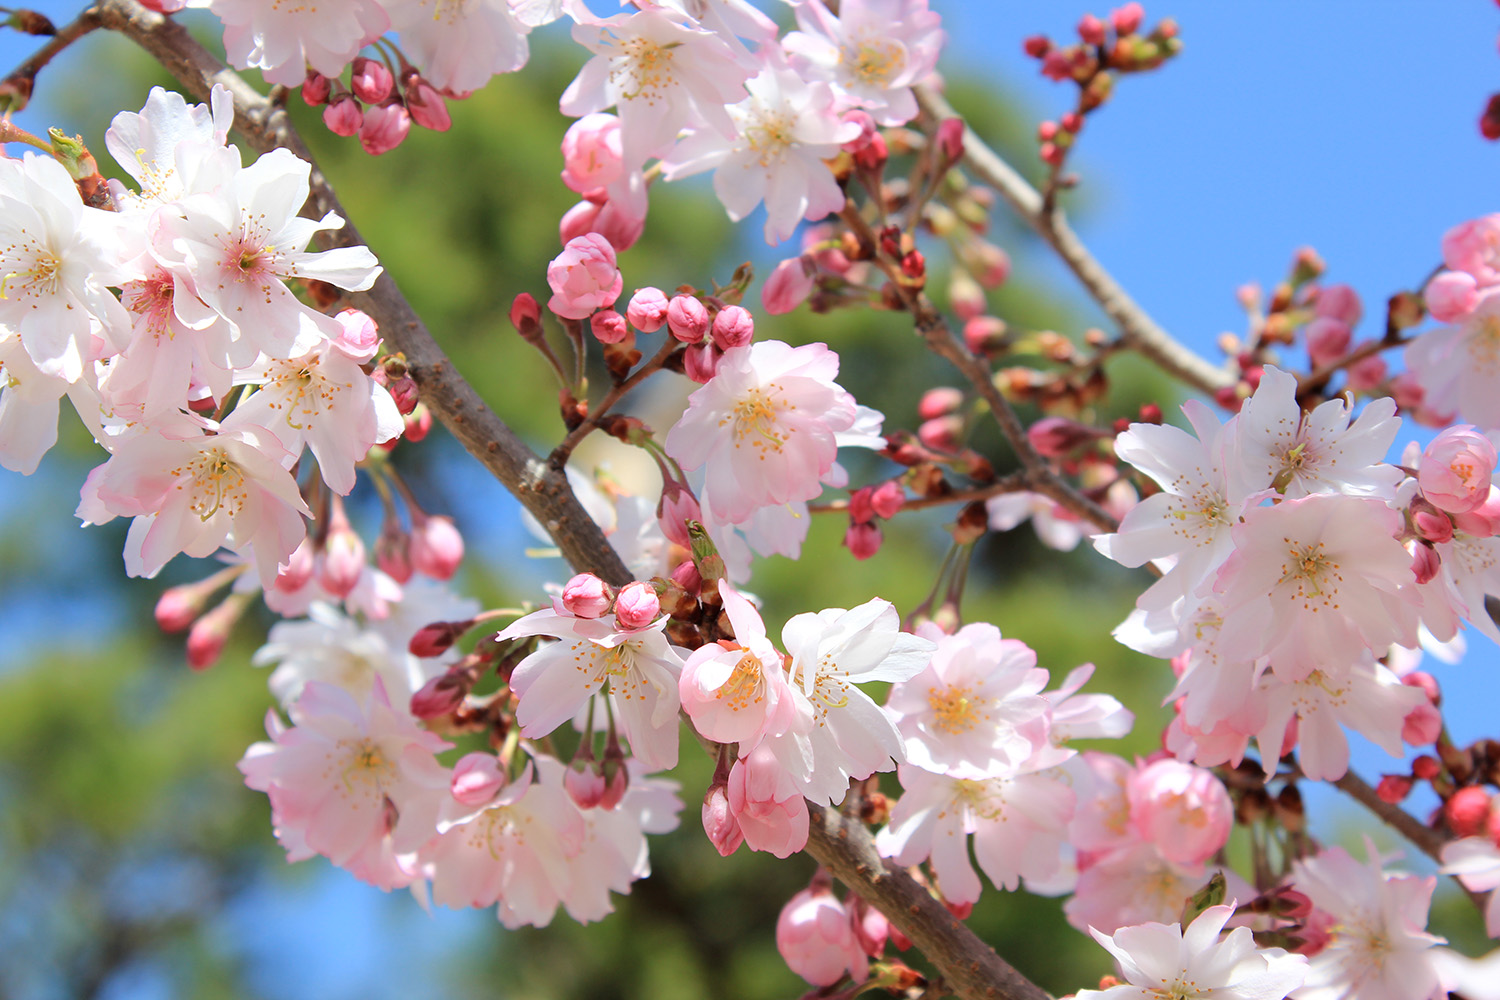 Cherry blossom in full bloom